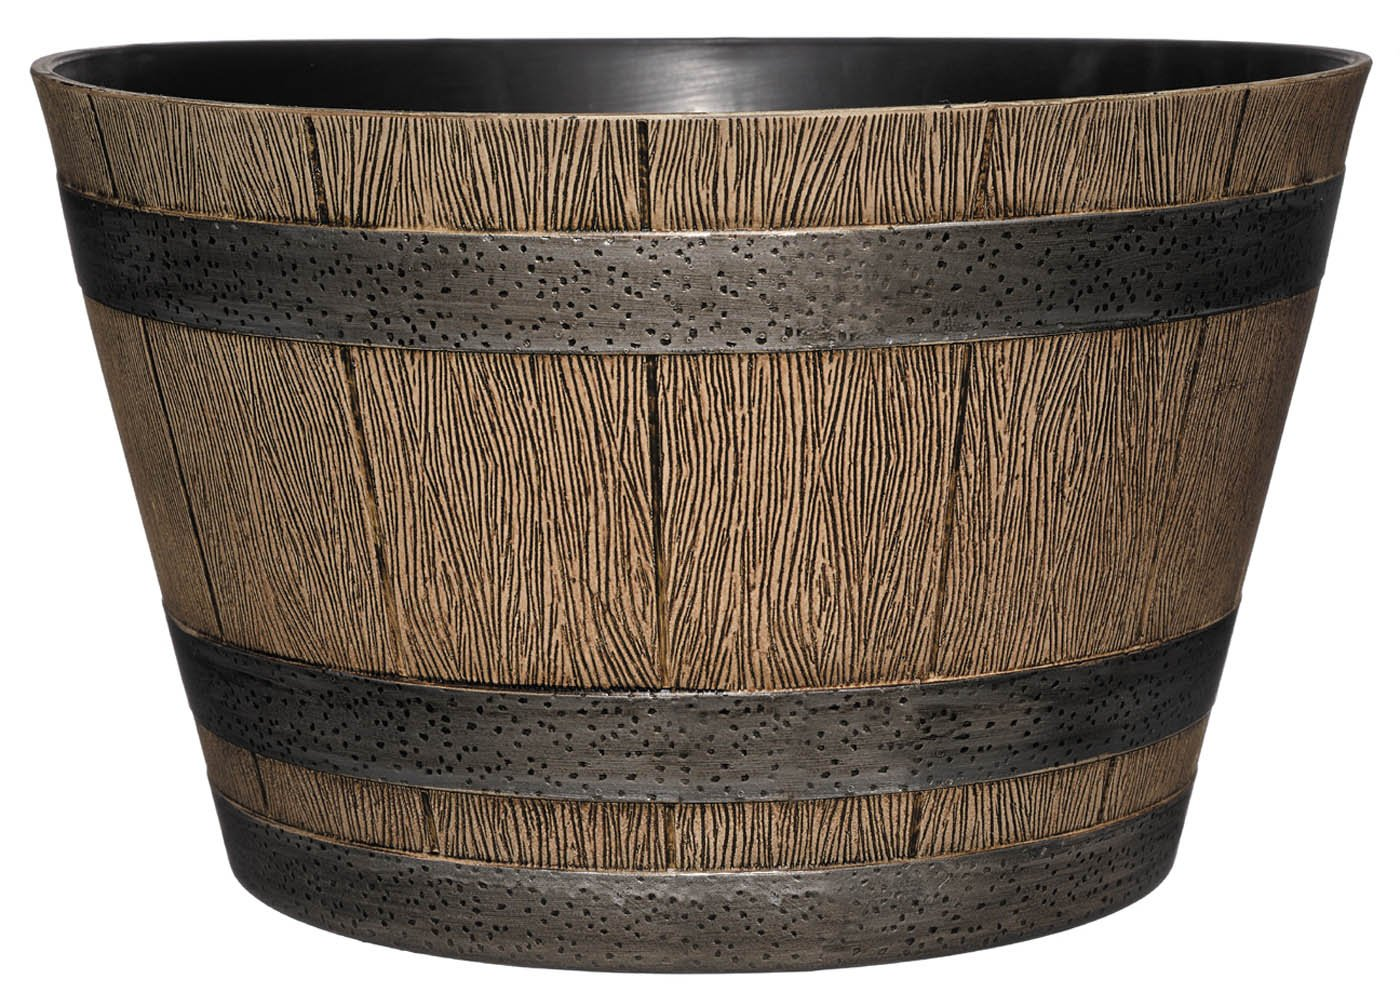 "Classic Home and Garden HD1-1027 DisOak Whiskey Barrel, 20.5"" Distressed Oak"